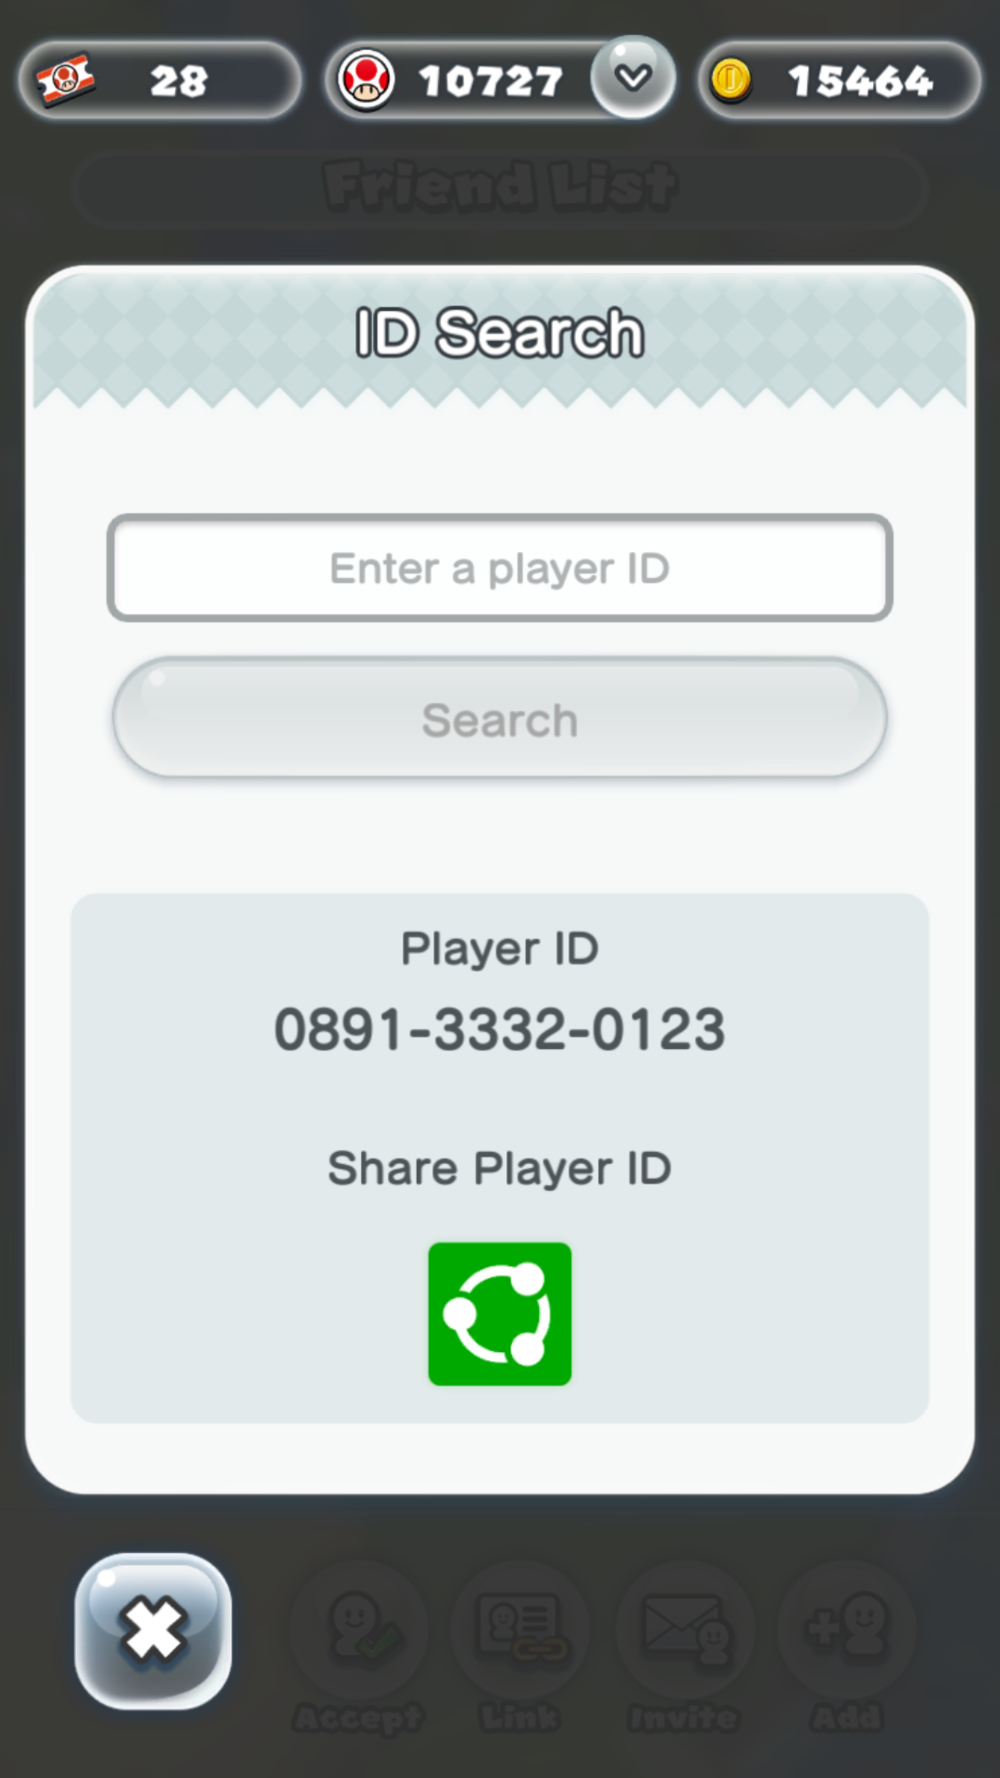 Player ID screen